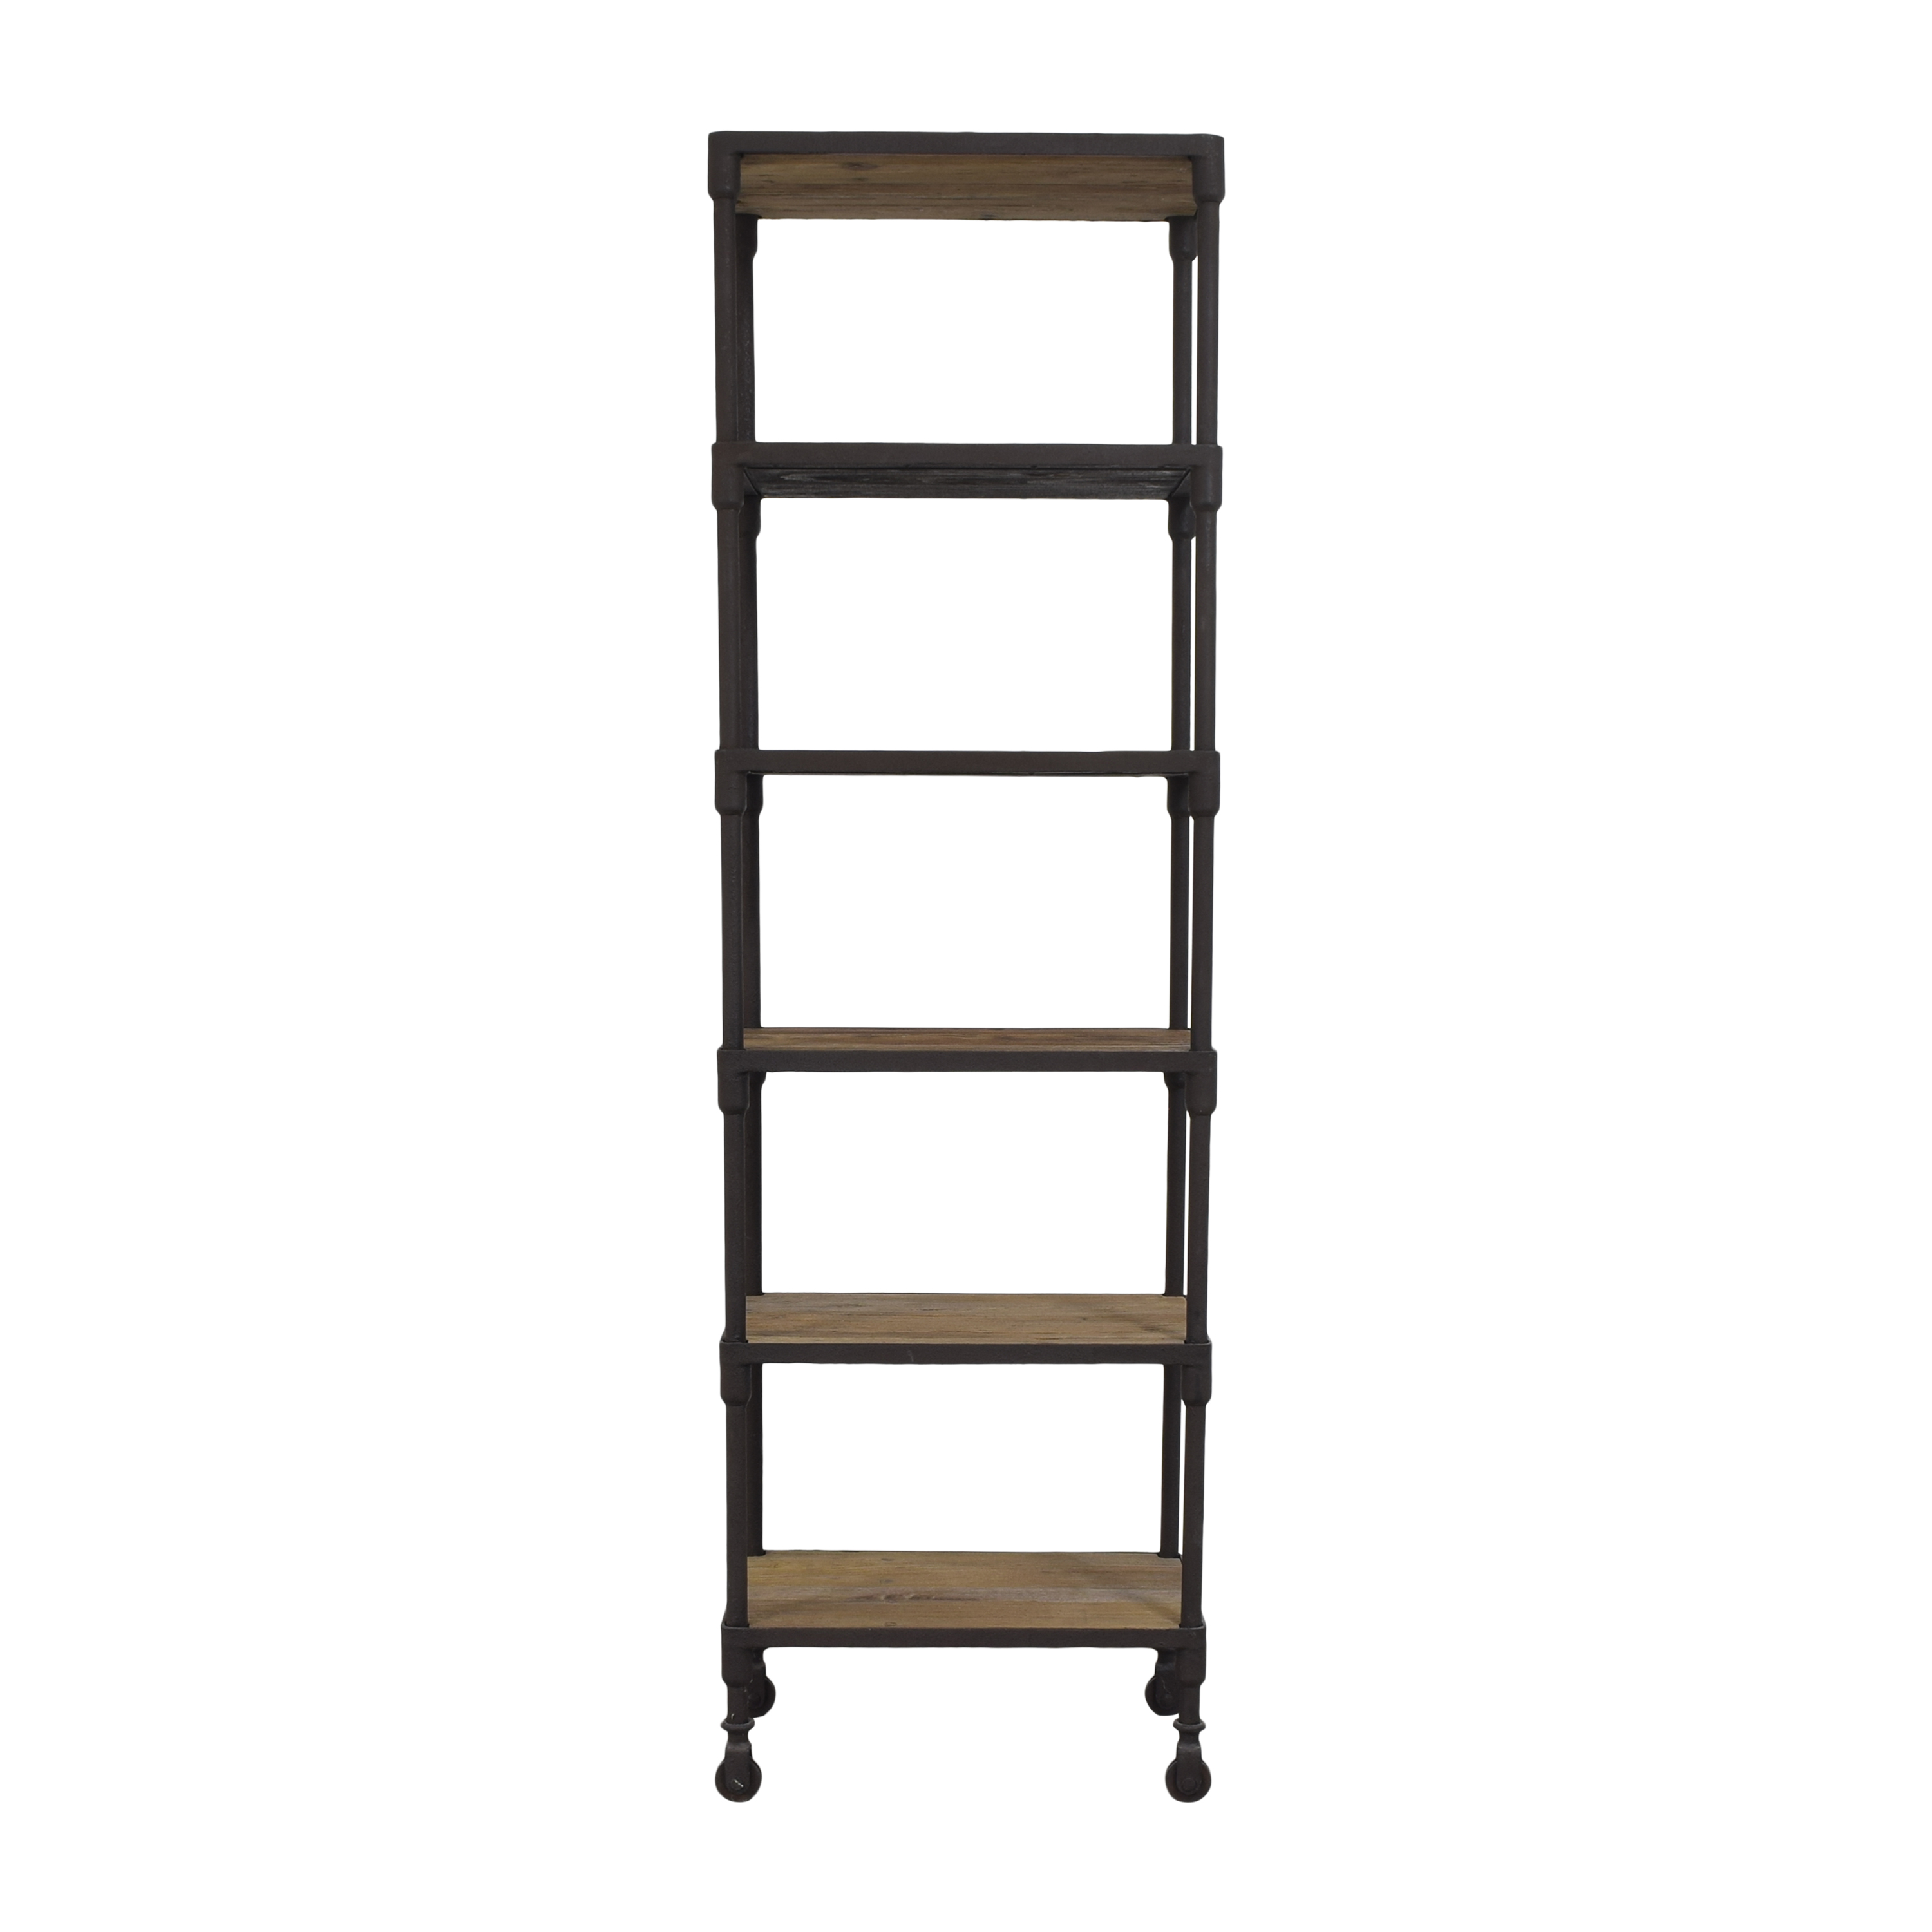 Restoration Hardware Restoration Hardware Dutch Industrial Tower ma